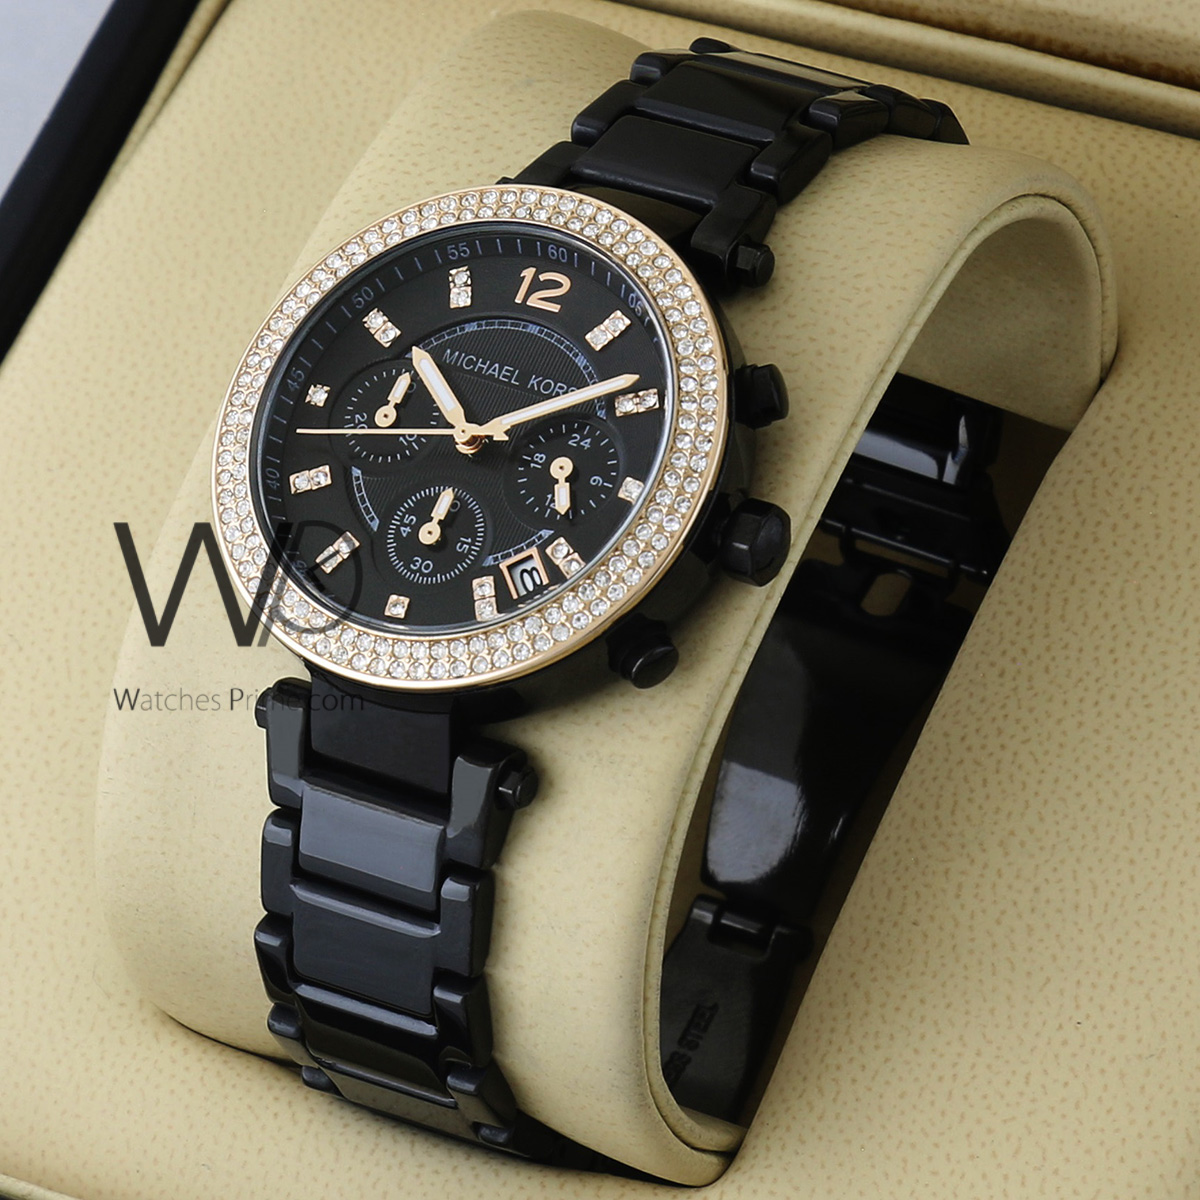 39b3c5cff4d6b MICHAEL KORS CHRONOGRAPH WATCH BLACK WITH STAINLESS STEEL BLACK BELT. SKU:  W1763. Roll over image to zoom in